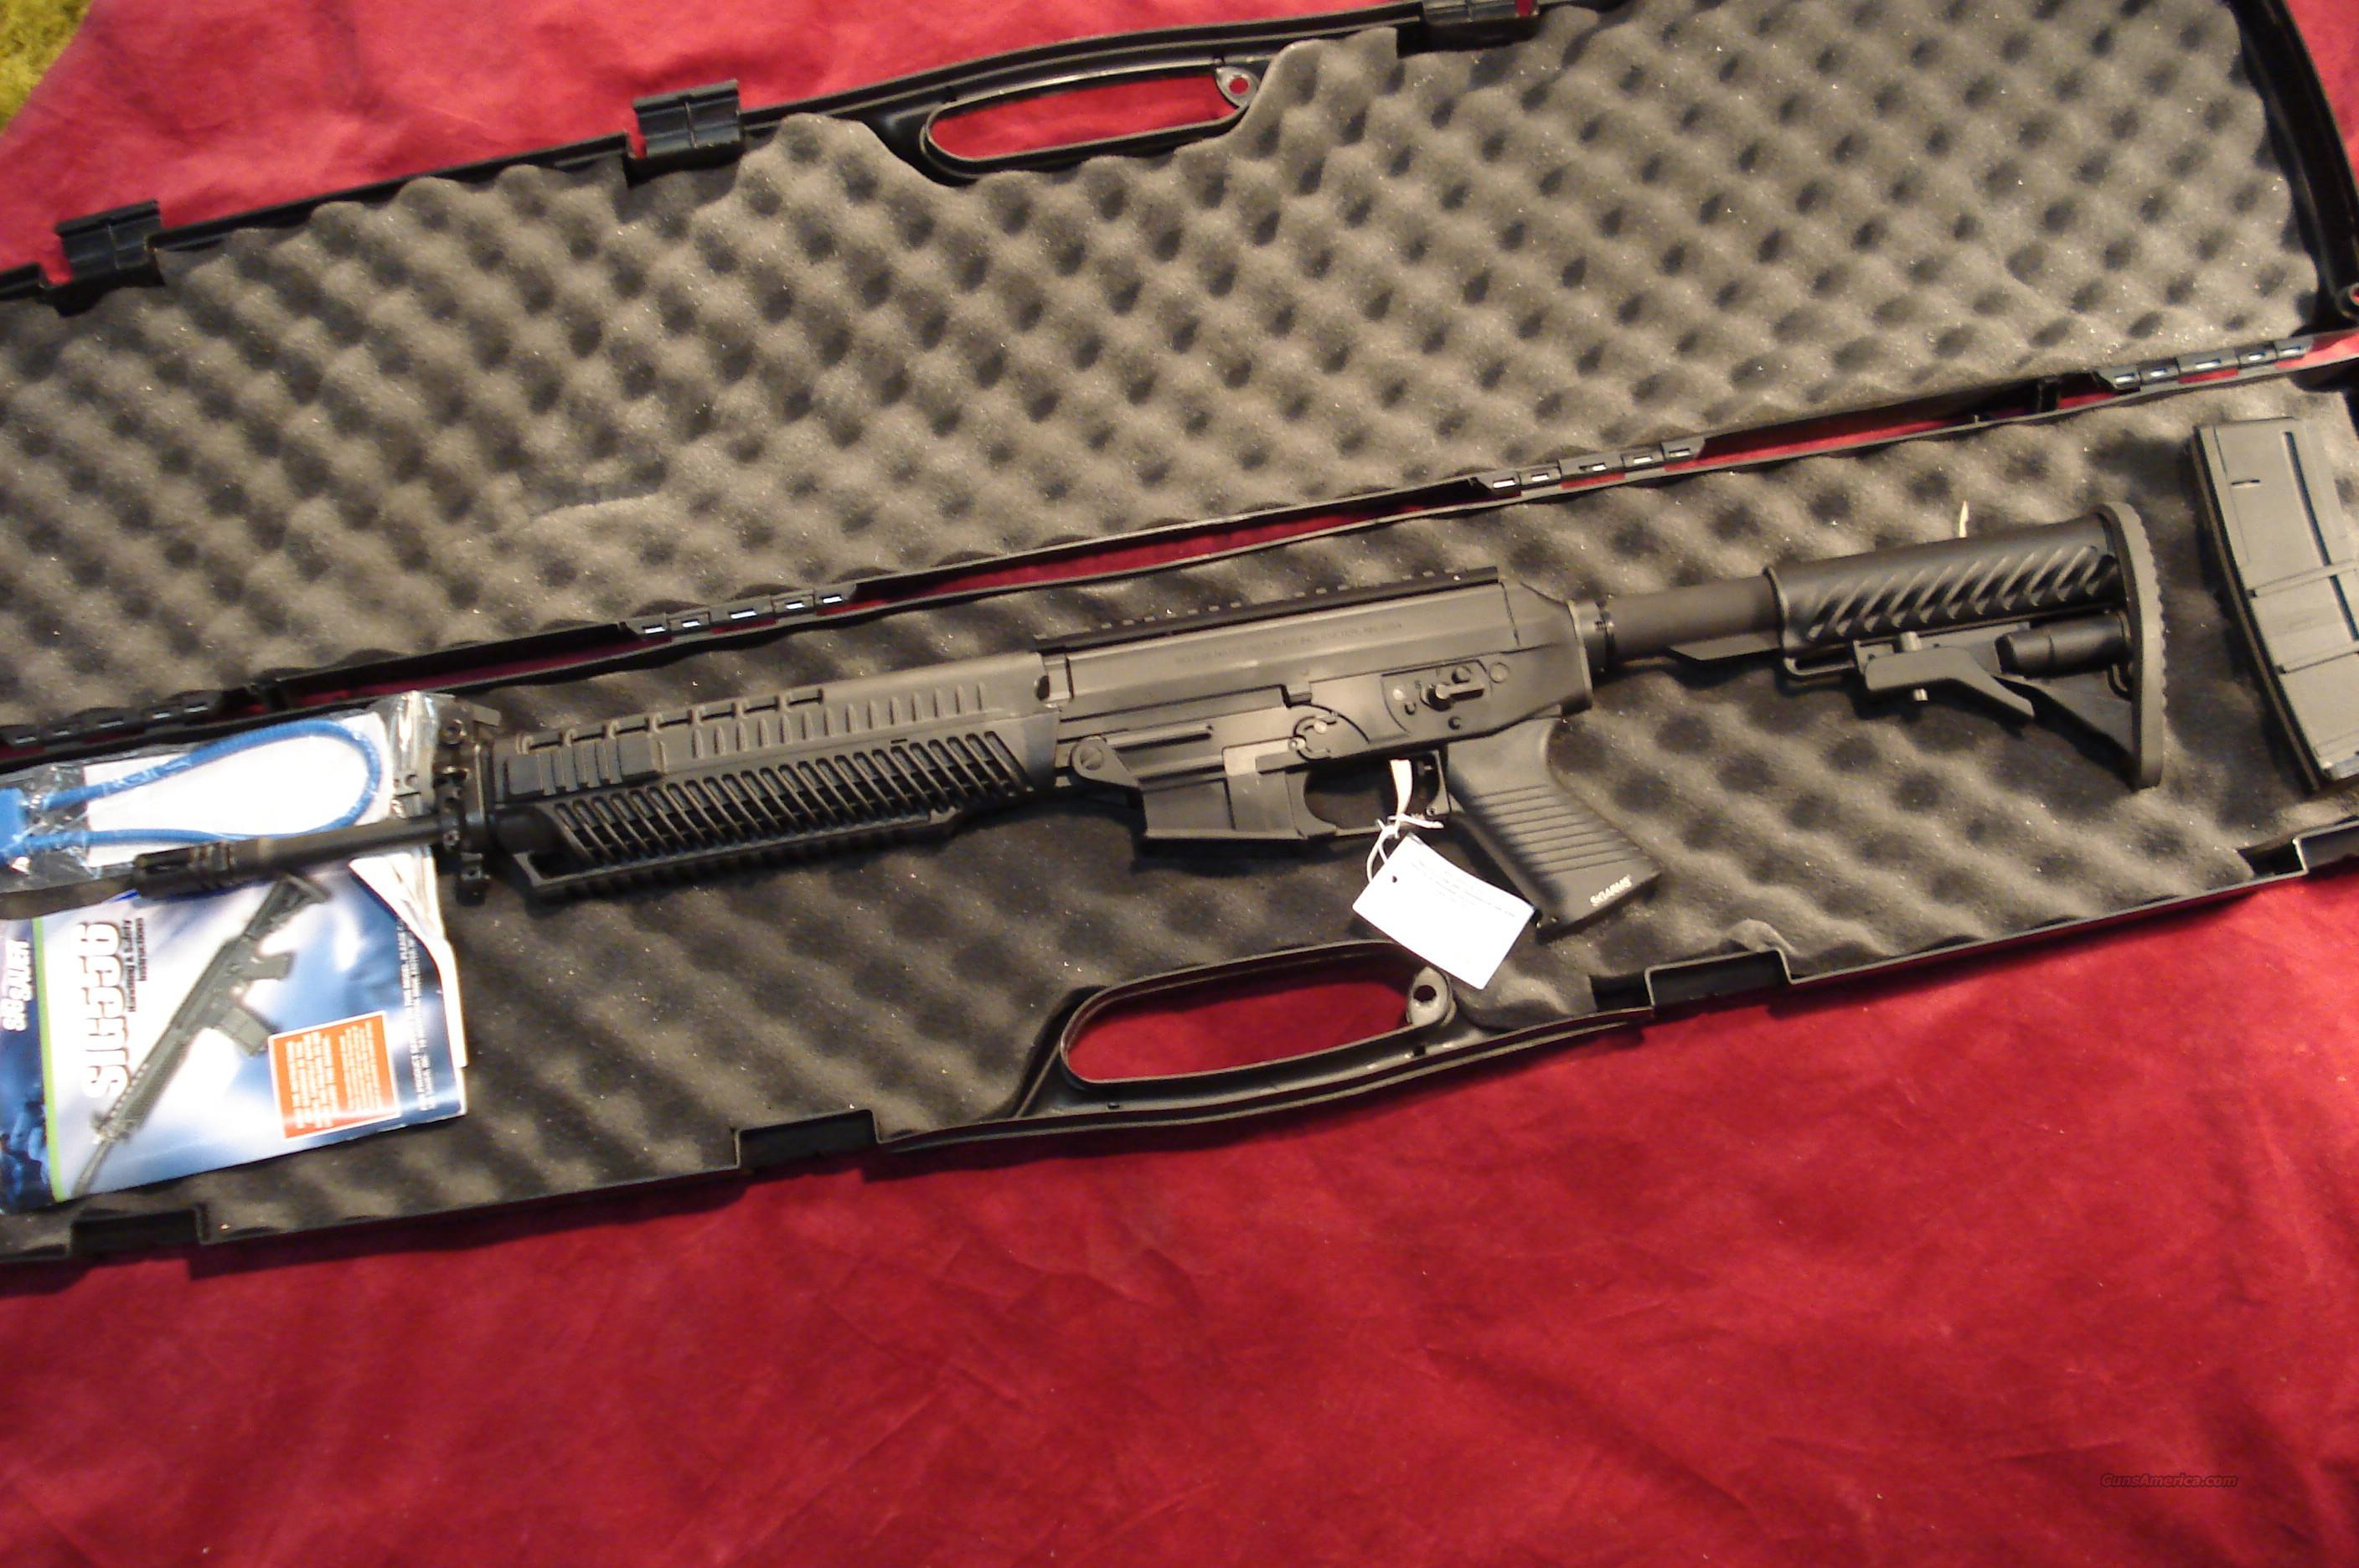 SIG SAUER 556 CARBINE RIFLE W/ FLIP UP SIGHT NEW   Guns > Rifles > Sig - Sauer/Sigarms Rifles